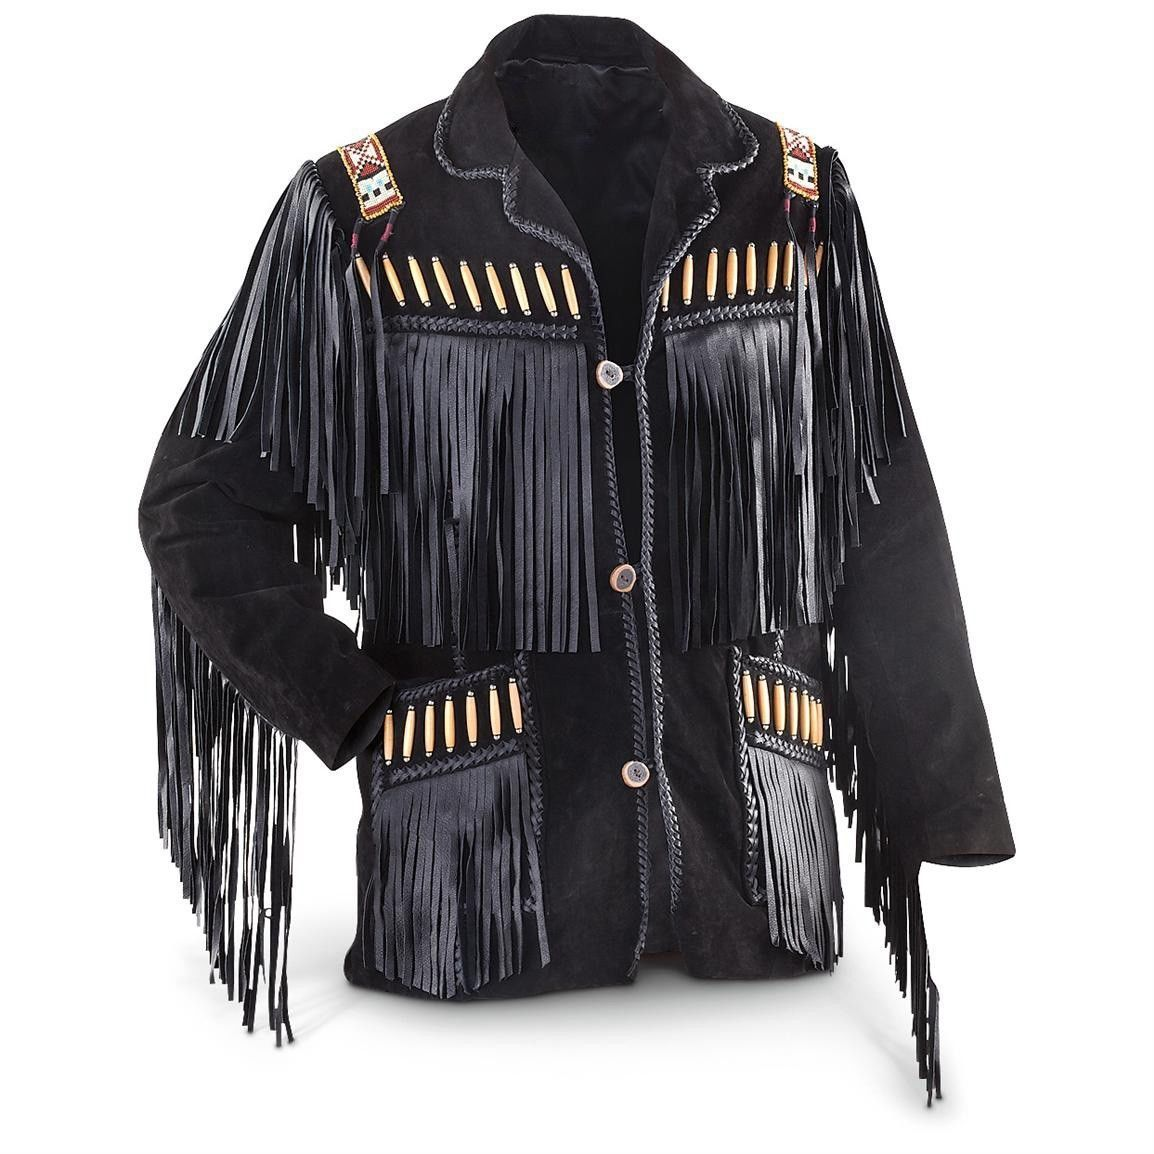 MEN'S WESTERN JACKET BLACK COWBOY LEATHER JACKET, MEN FRINGE JACKET PLUS SIZE